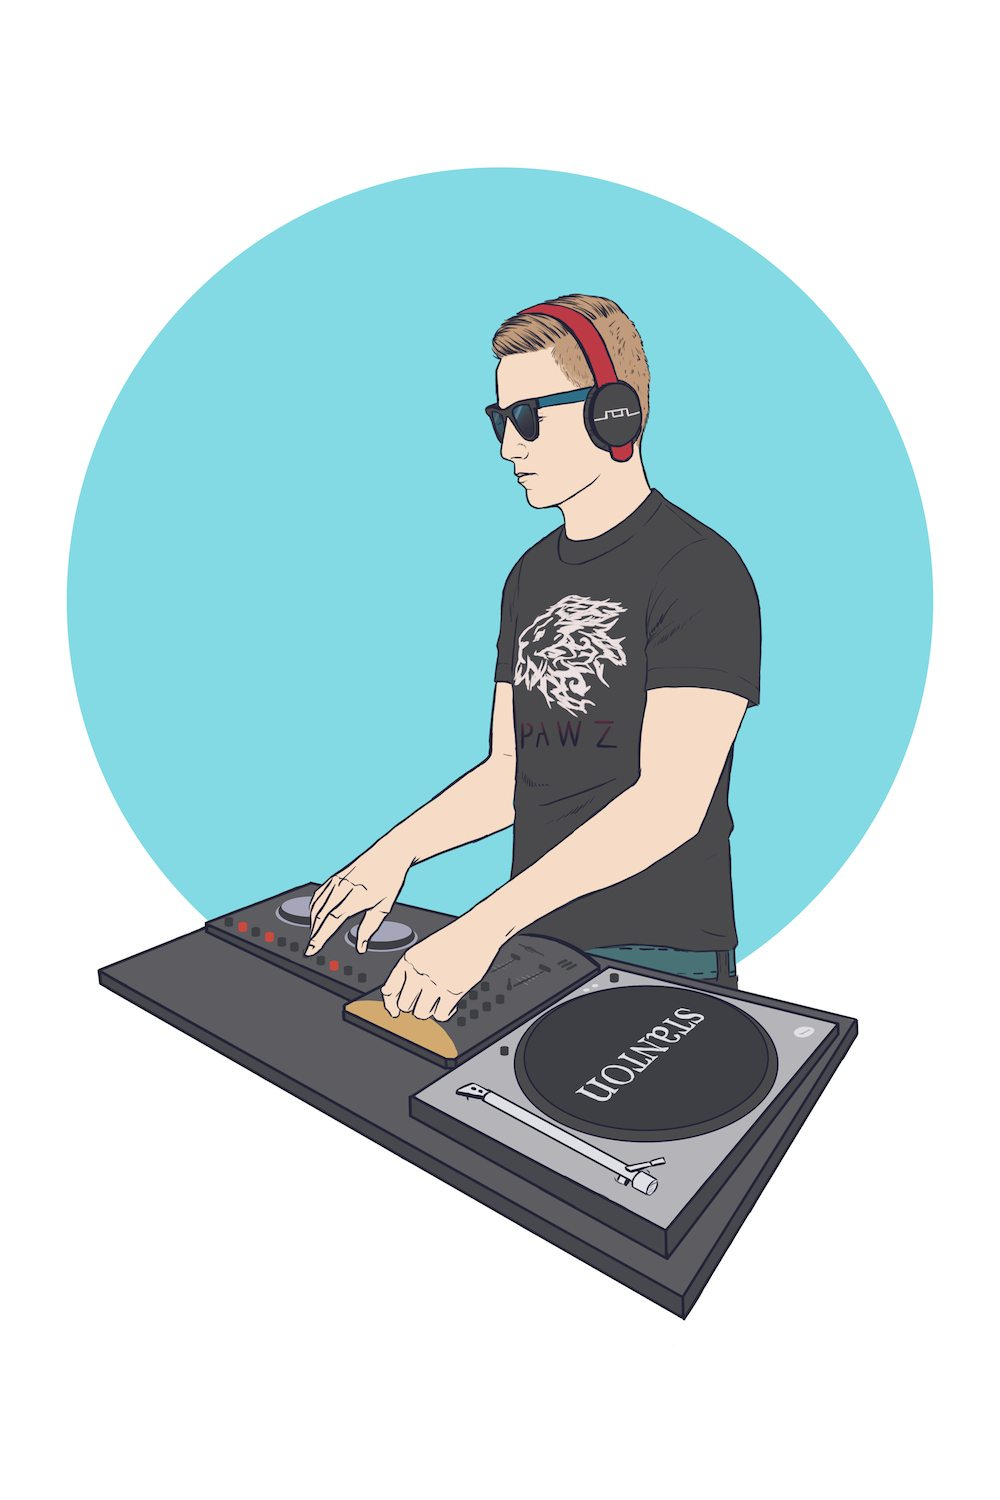 Portrait of Jeff DJing by Crespella via ArtCorgi